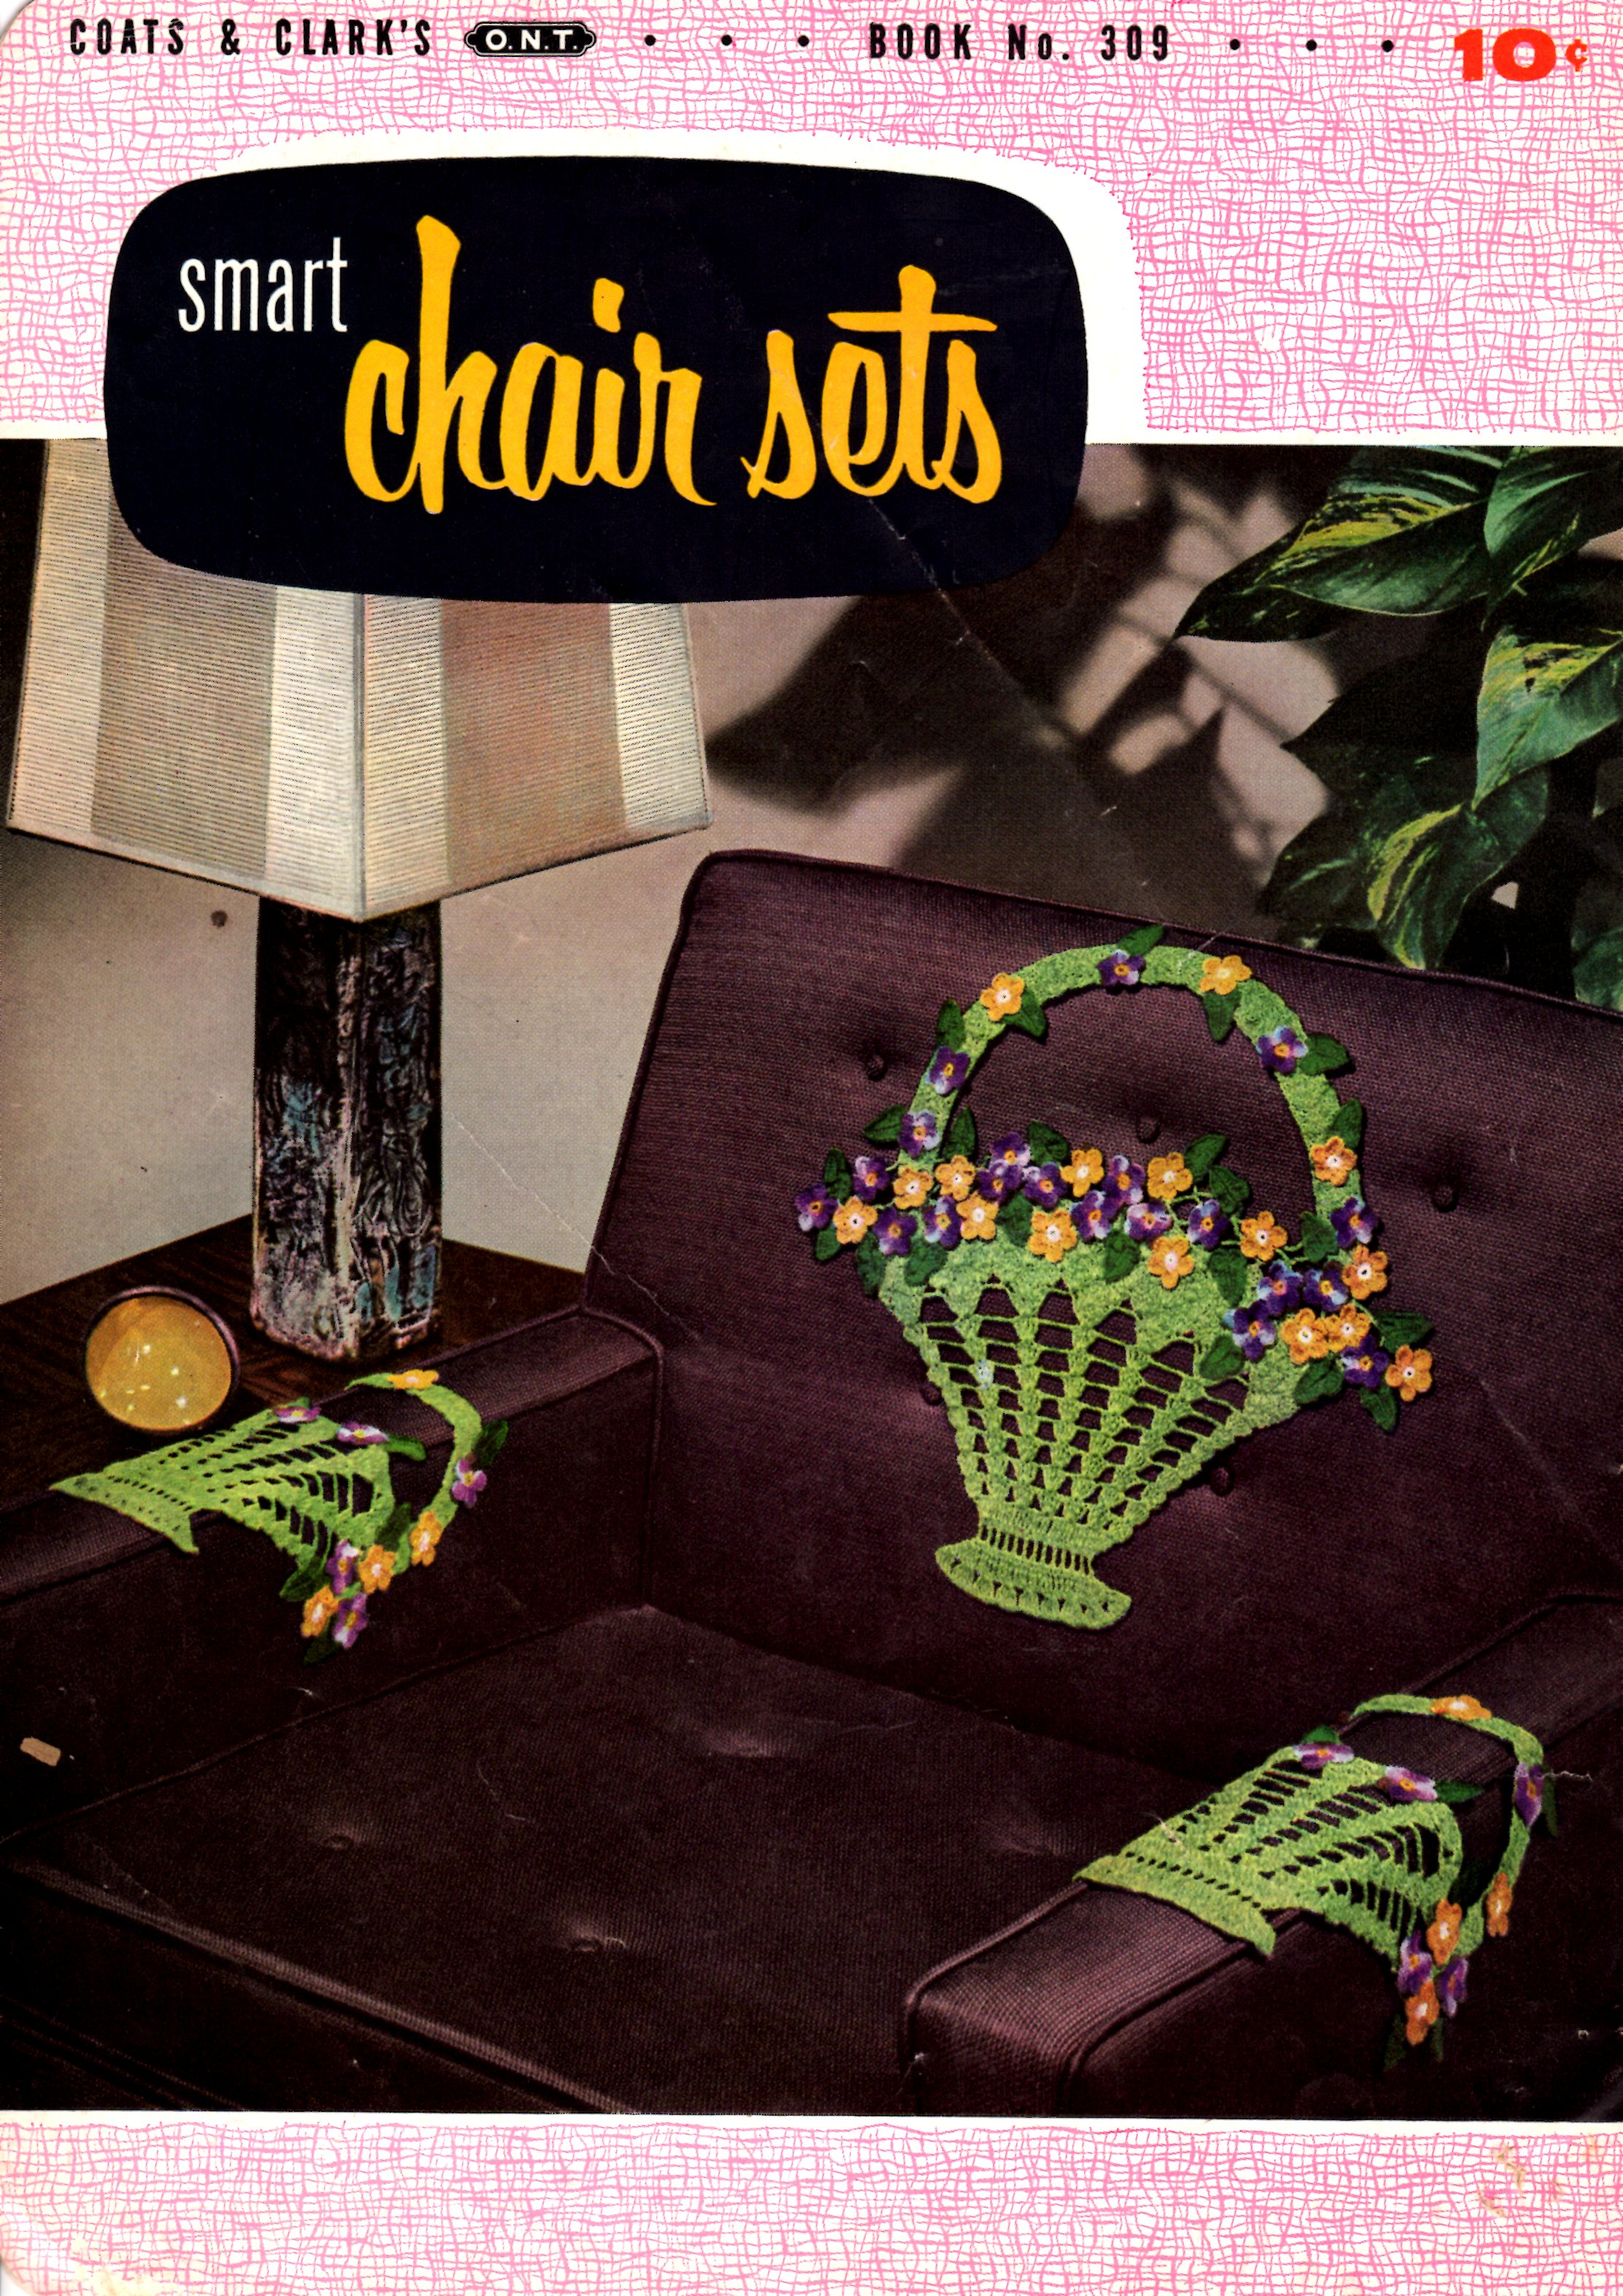 Crochet Flower Basket Pattern From Smart Chair Sets Coats And